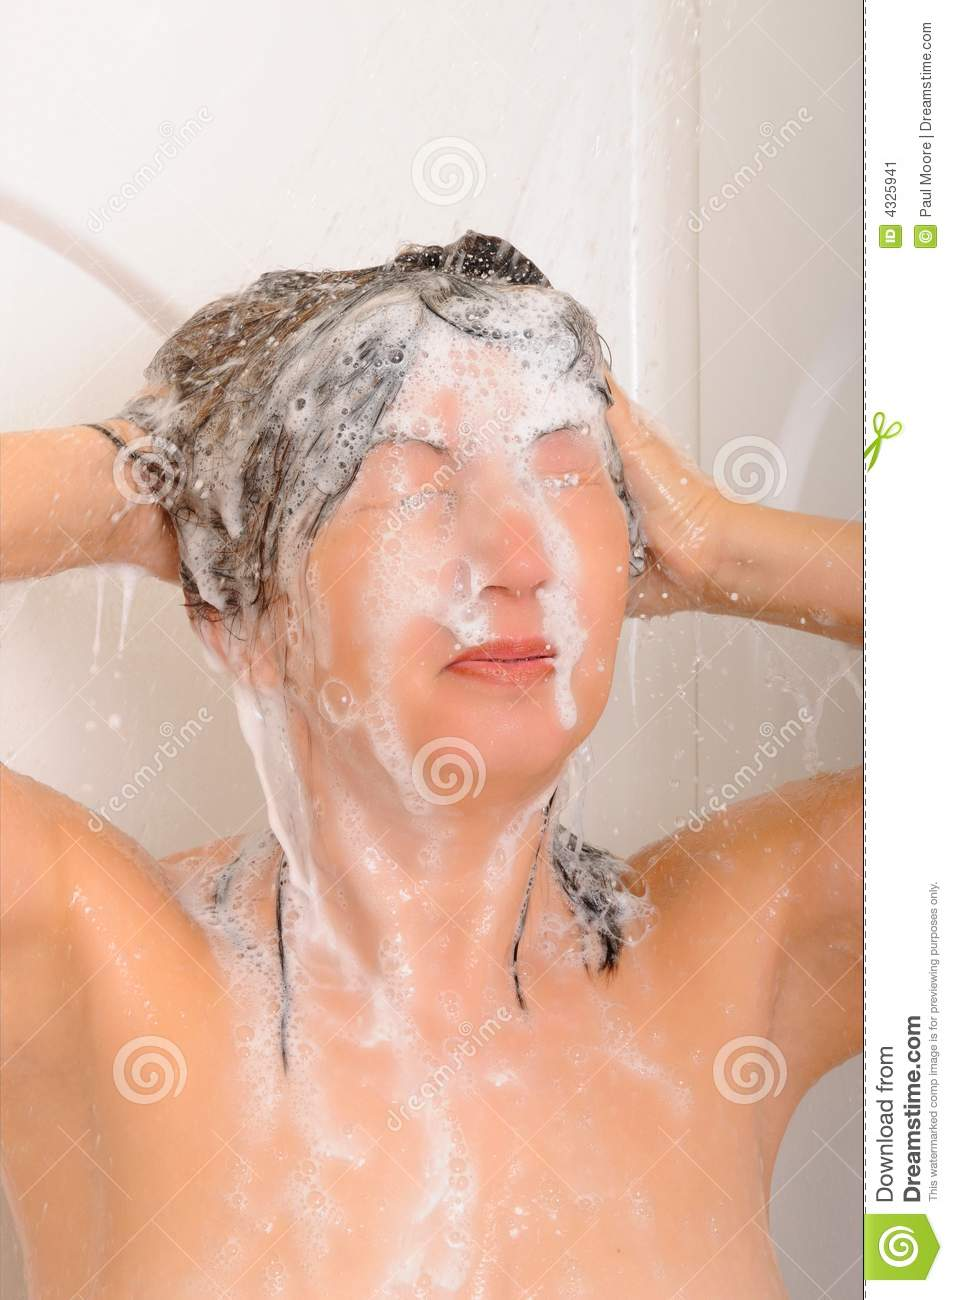 Shampoo Hair Shower Stock Image Image 4325941